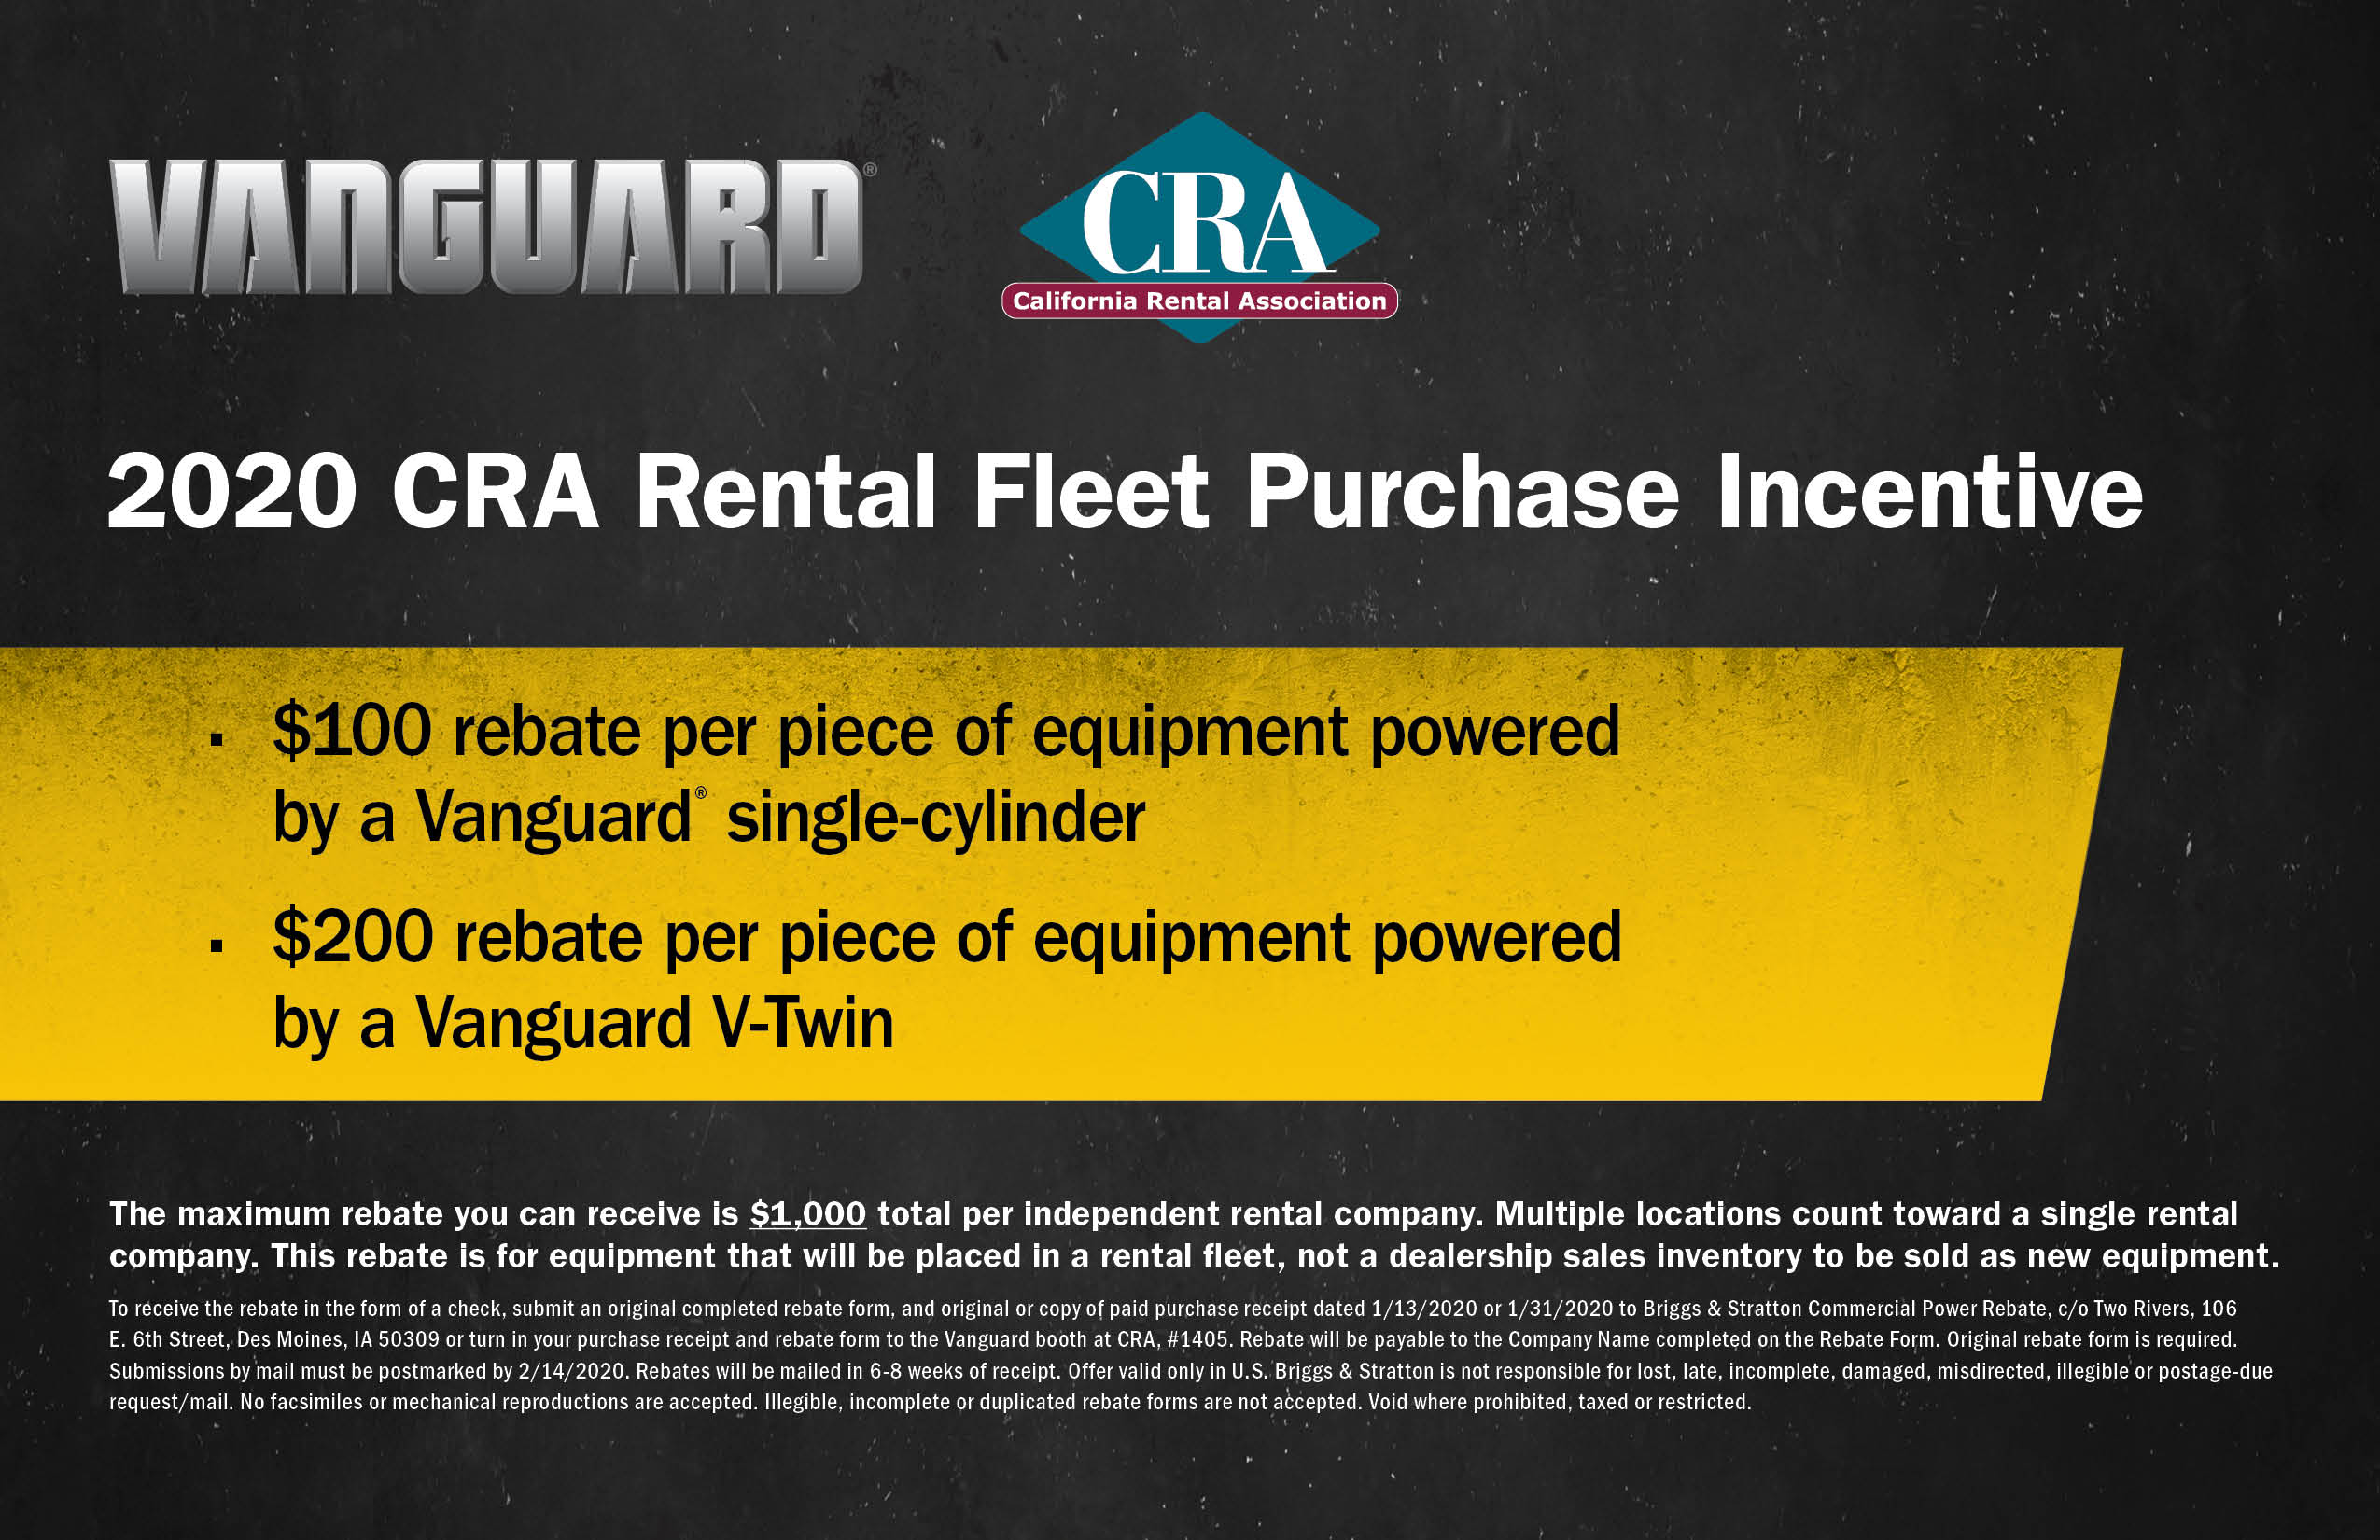 Vanguard 2020 CRA rental fleet purchase incentive